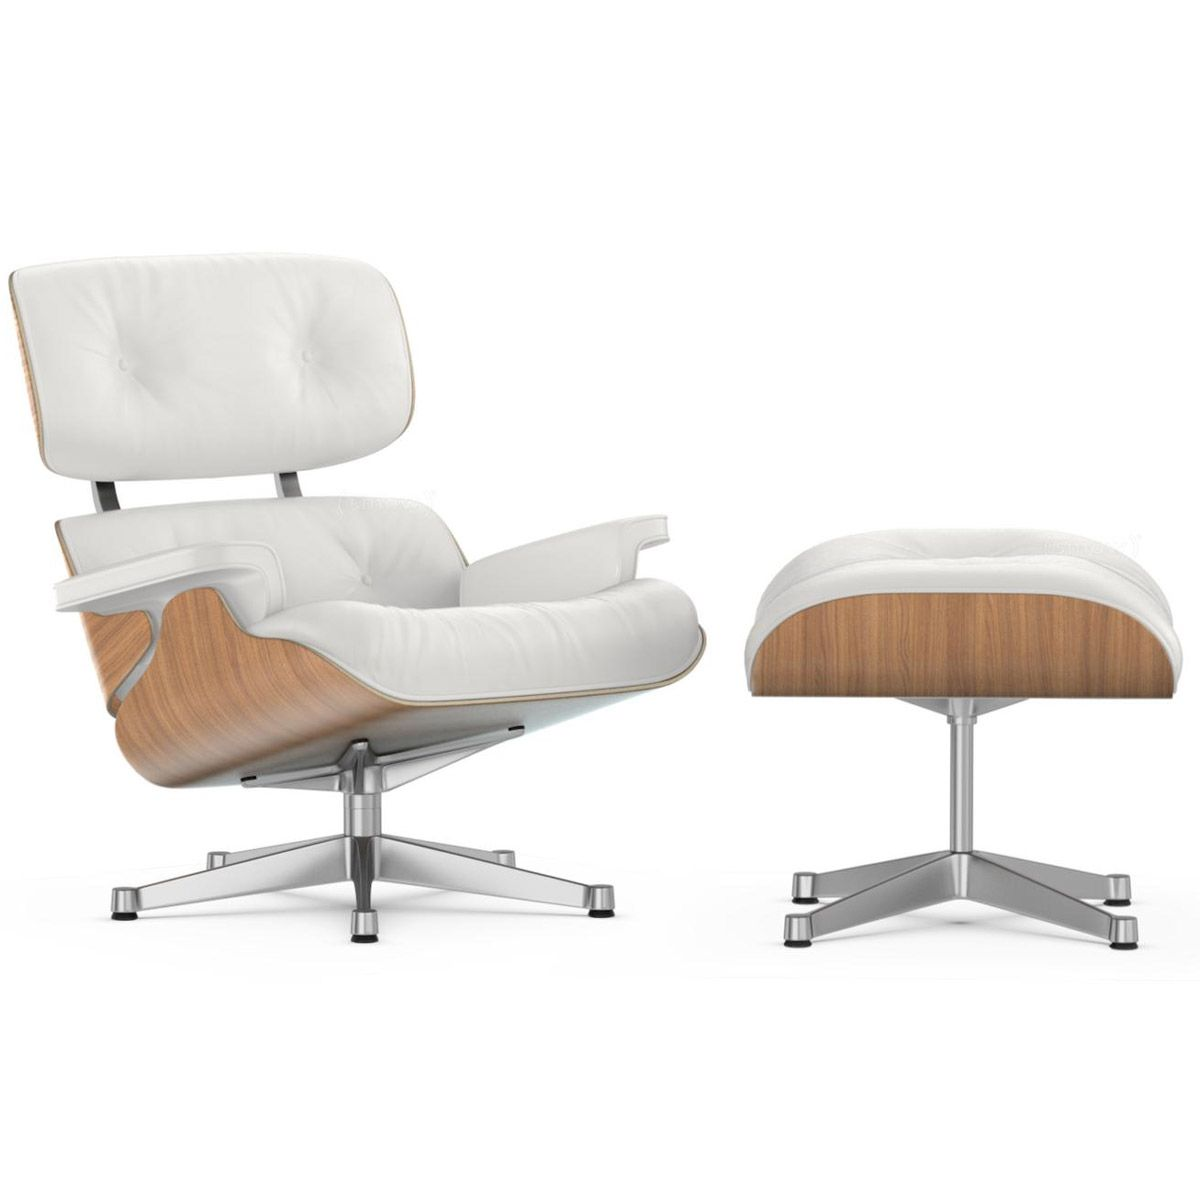 Butaca Charles Eames Lounge Chair And Ottoman Nogal Blanco Vitra En La Tienda